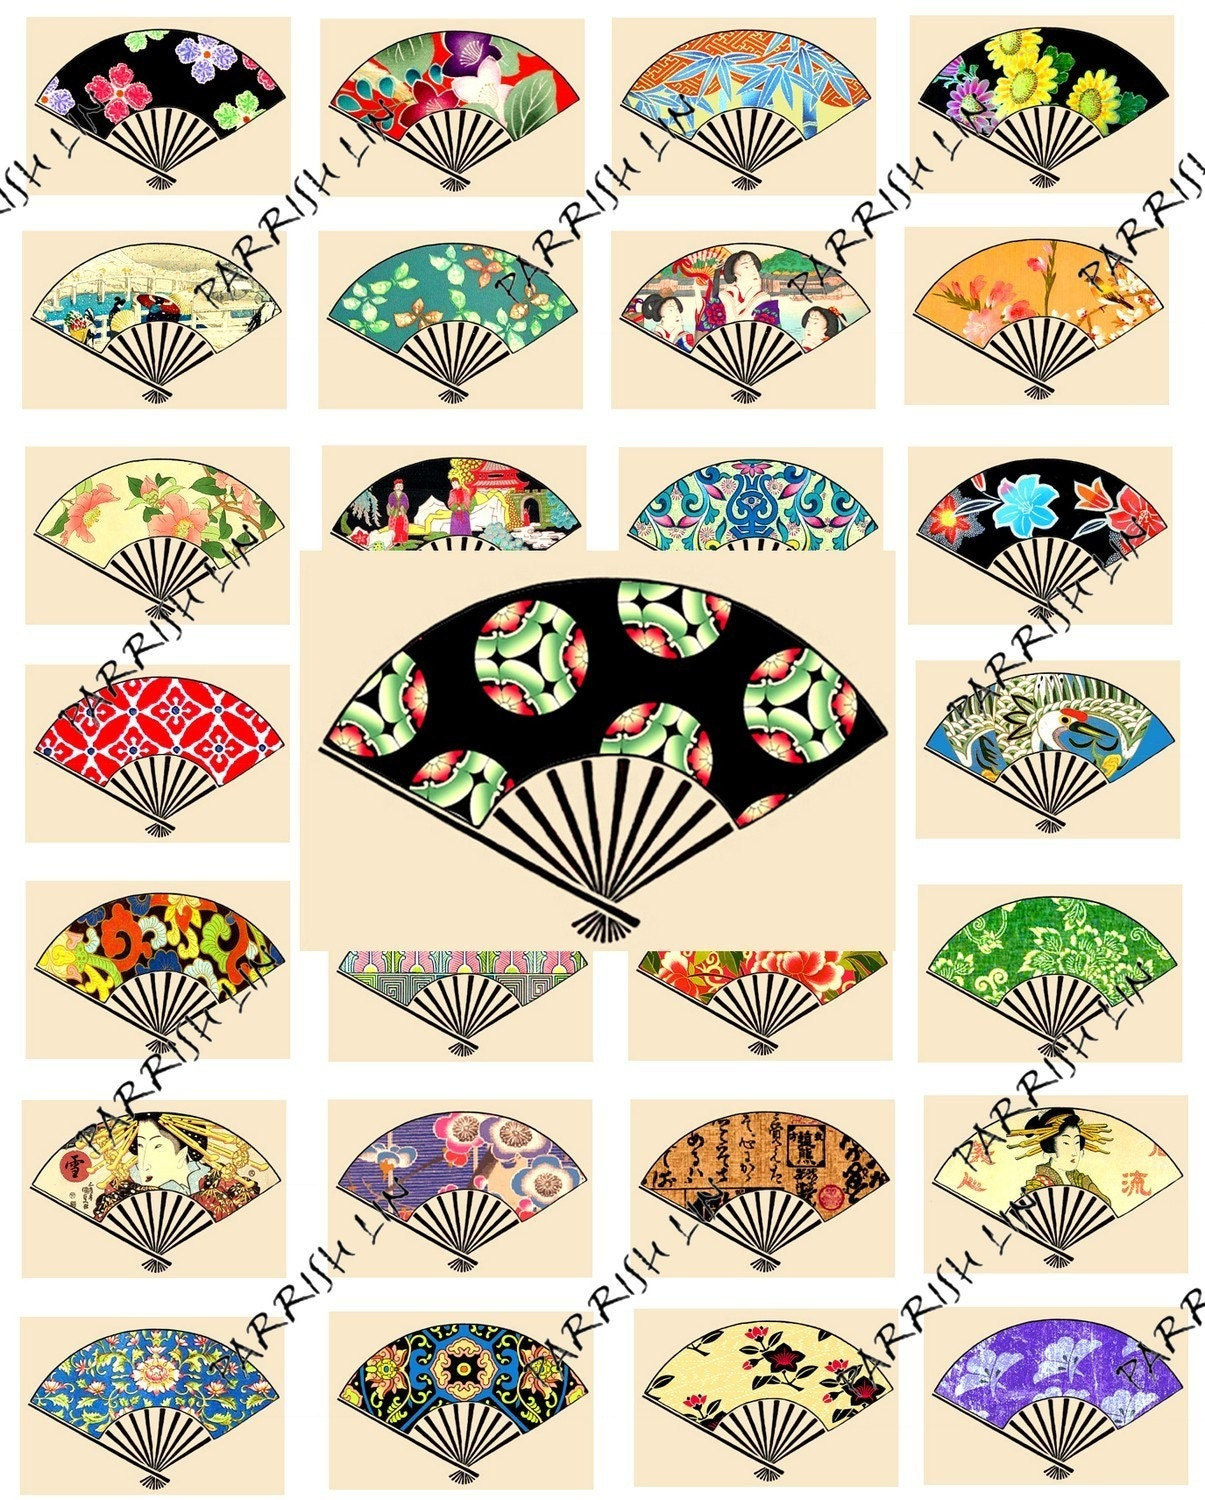 1000 images about chinese fan designs on pinterest fan tattoo drawing tattoos and hand fans. Black Bedroom Furniture Sets. Home Design Ideas